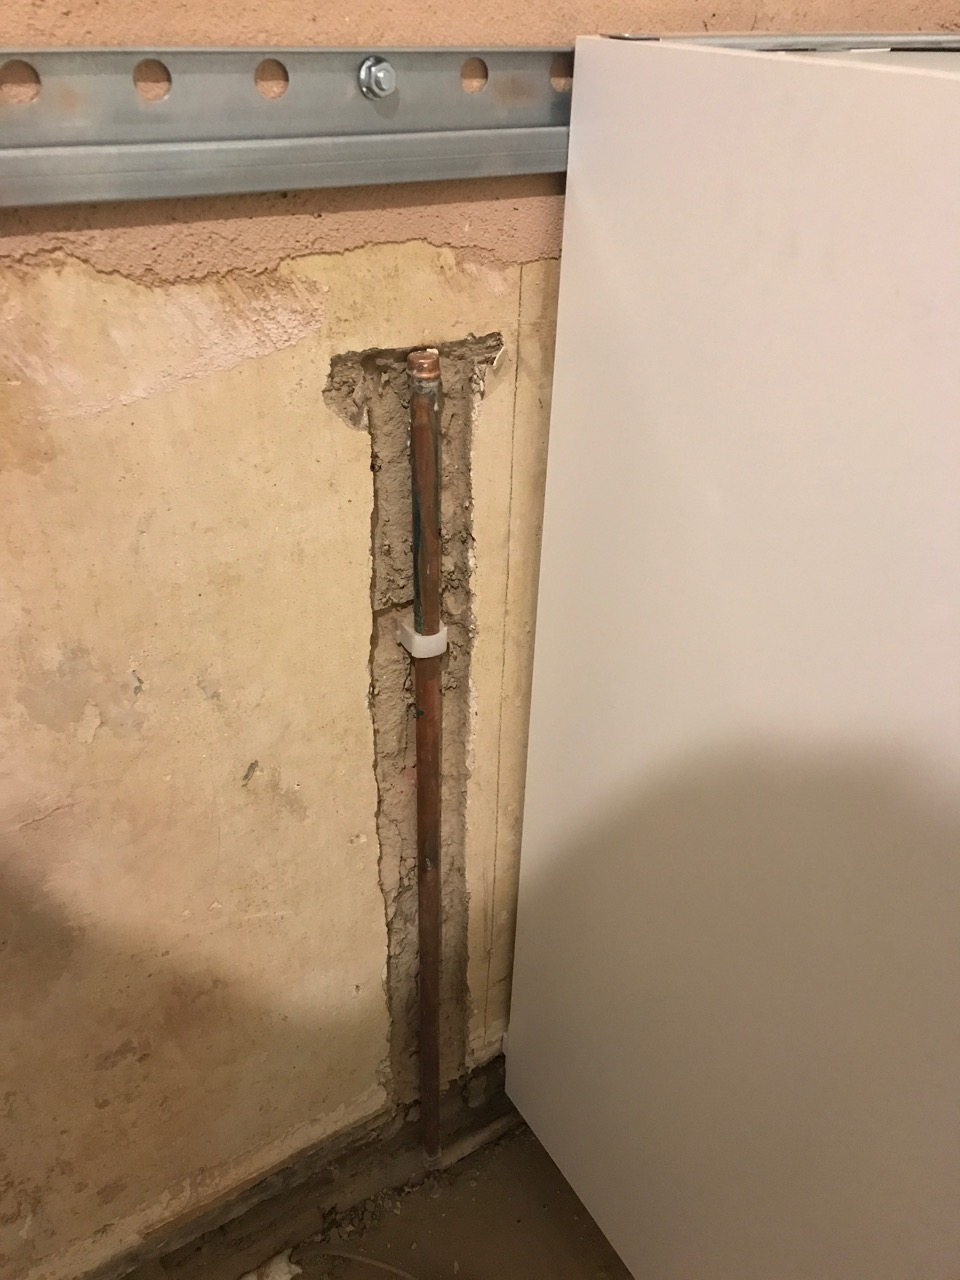 Gas pipe chased into wall